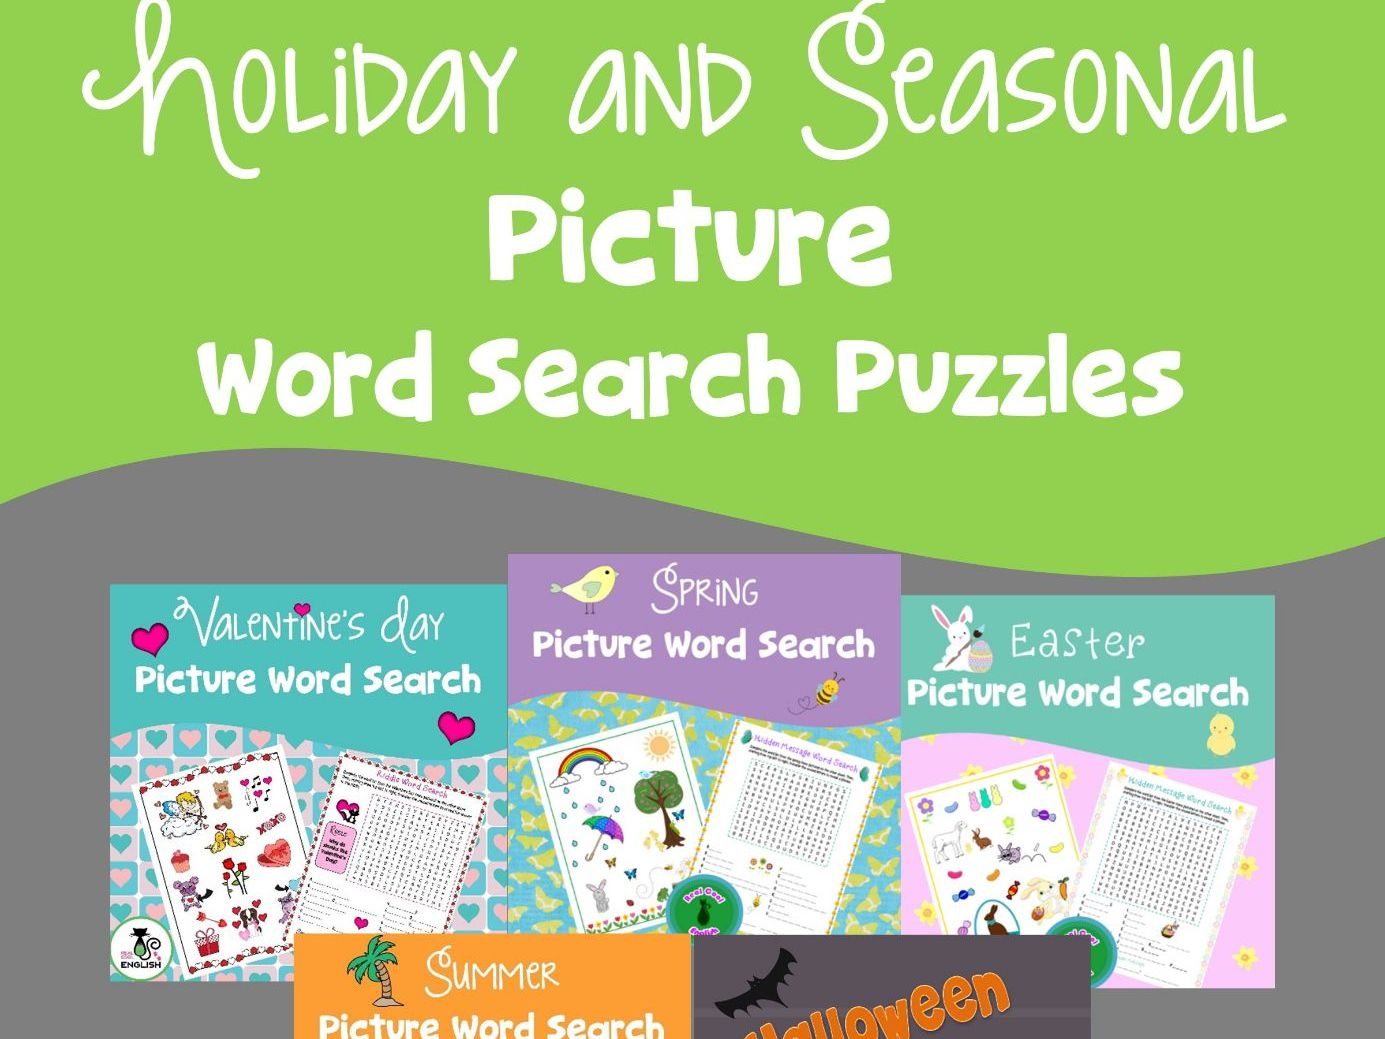 Holiday and Seasonal Picture Word Search Puzzles